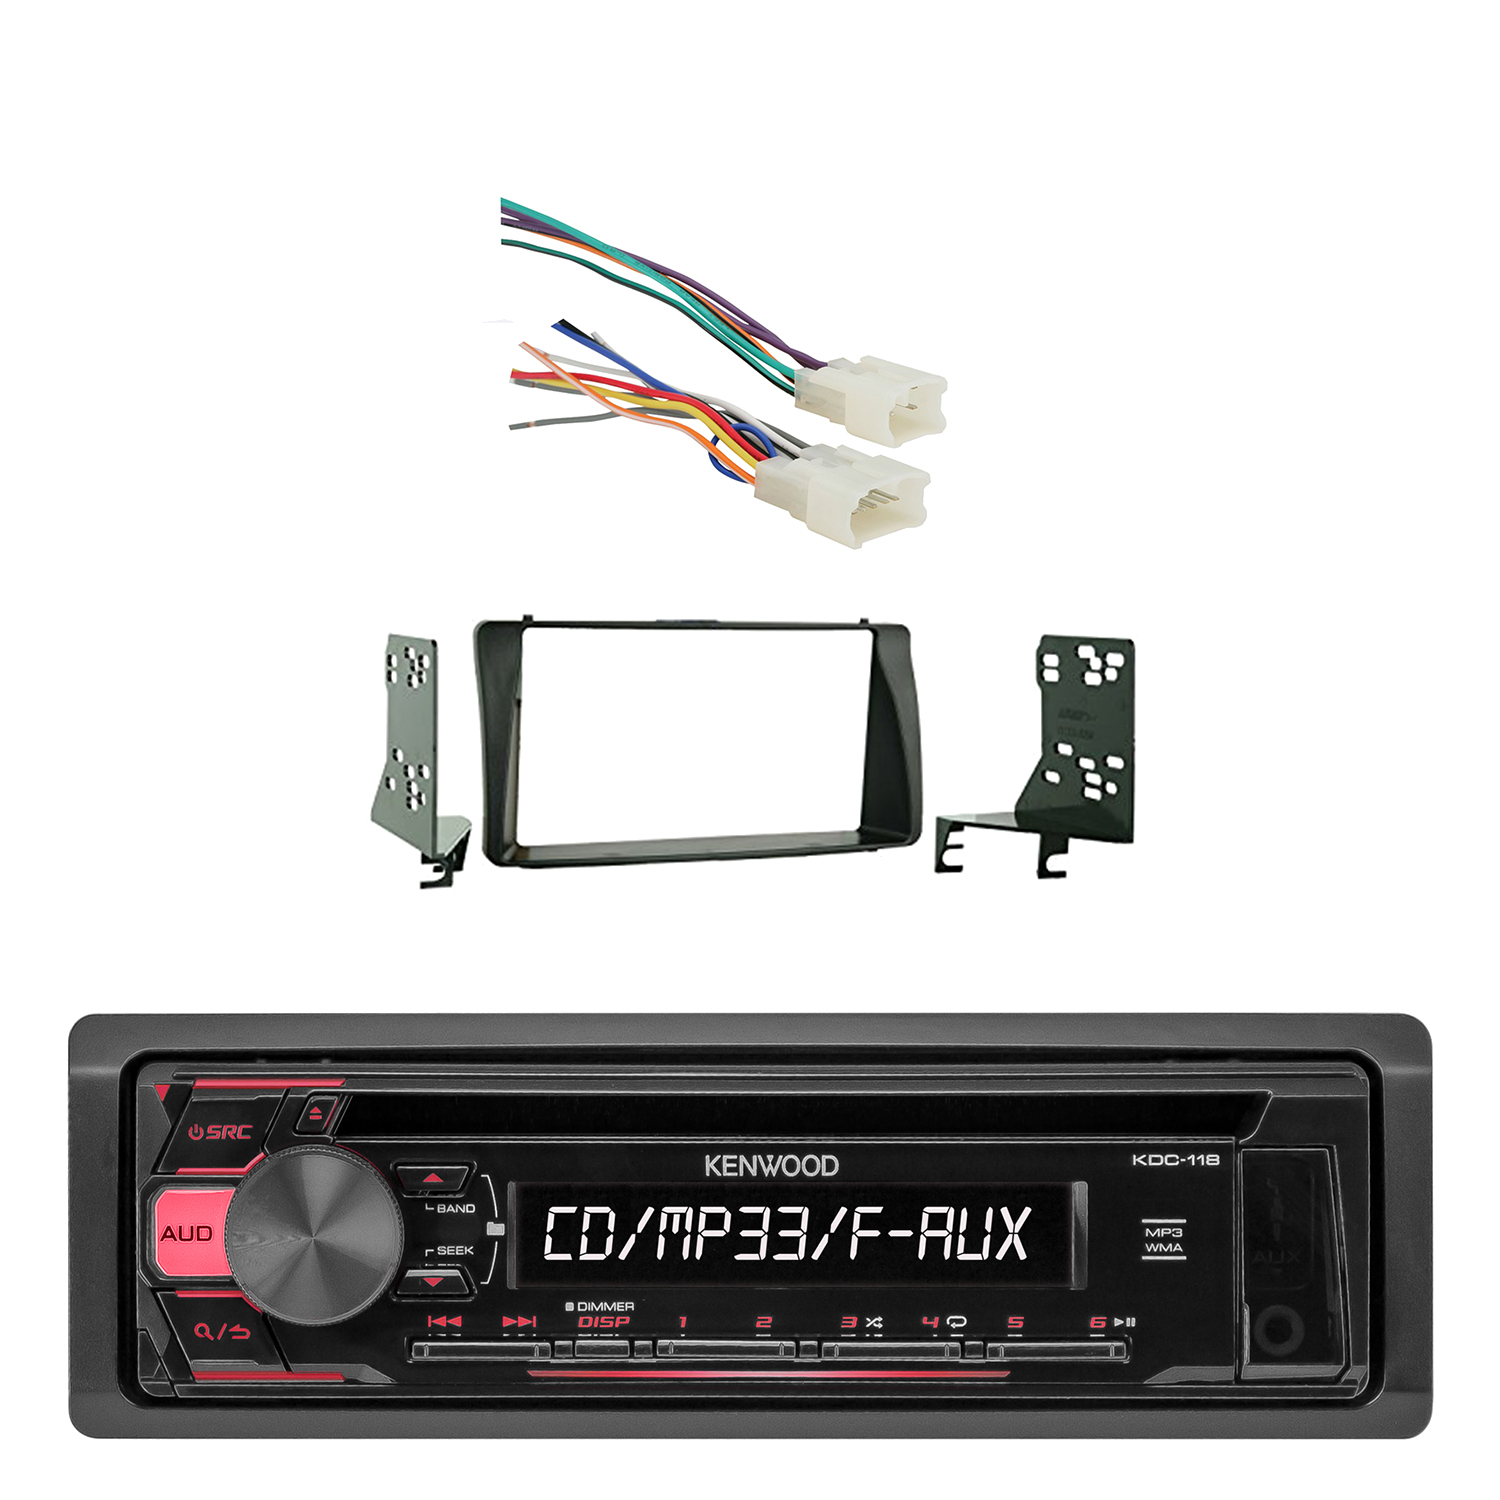 Kenwood In-Dash Single-DIN CD Player AUX Car Stereo Receiver with Metra Radio Wiring Harness For Toyota 87-Up Power 4 Speaker and Metra Double DIN Installation Kit for 2003-up Toyota Corolla Vehicles